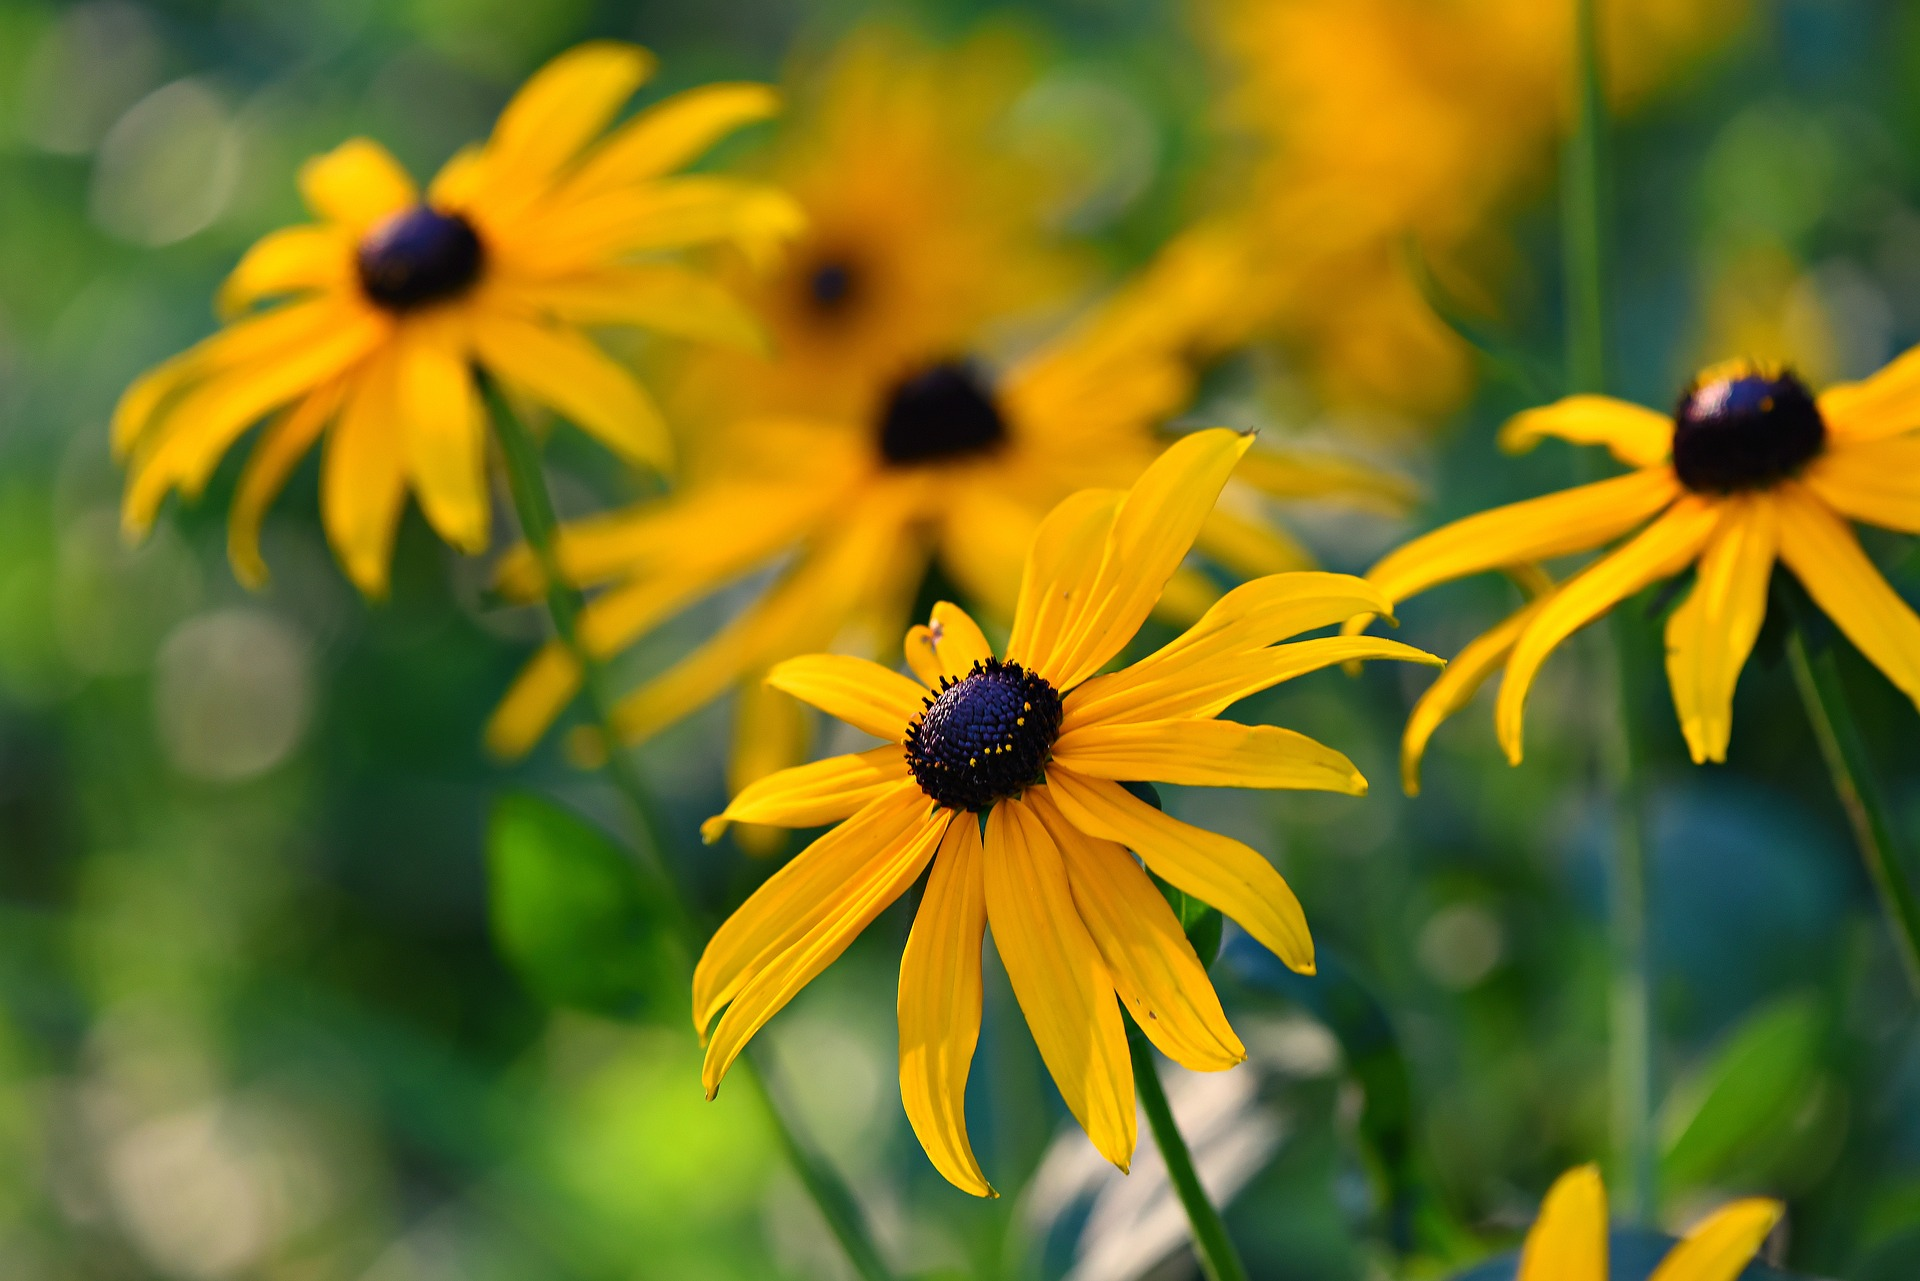 rudbeckia-Image by Mabel Amber, still incognito... from Pixabay